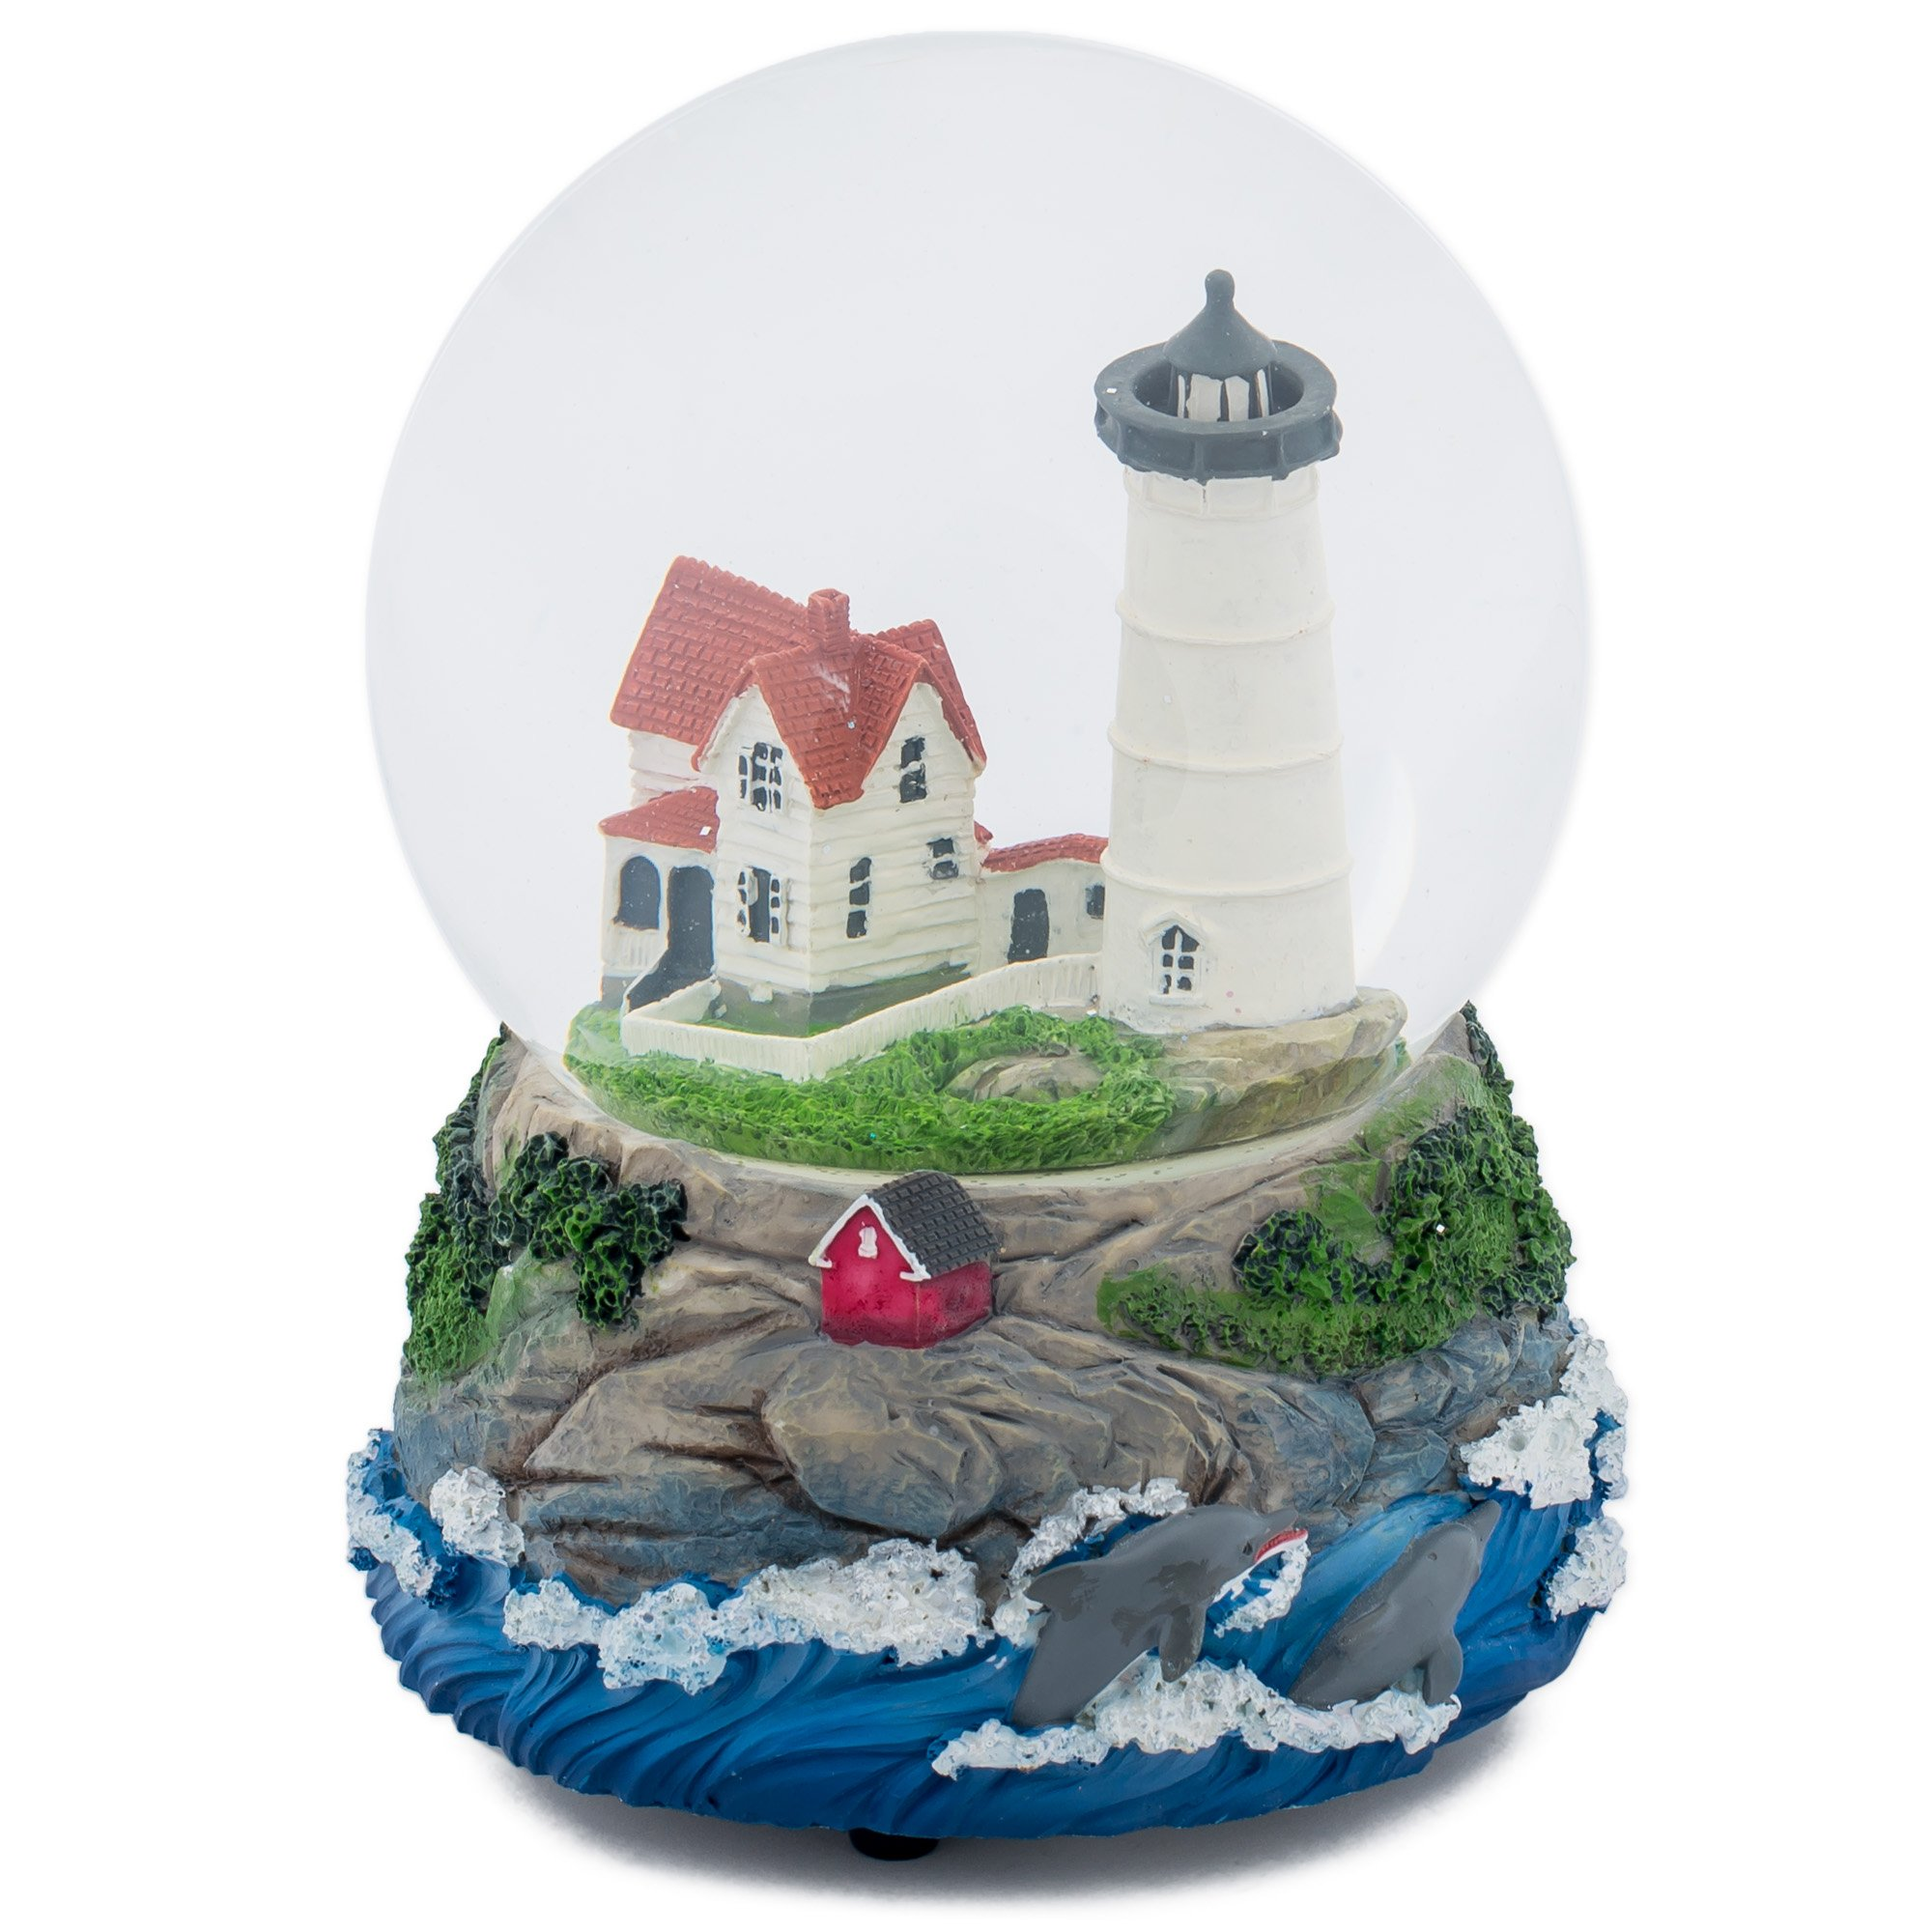 Cape Cod Lighthouse Cottage 100MM Music Water Globe Plays Tune Dock of the Bay by Cadona International, Inc (Image #1)